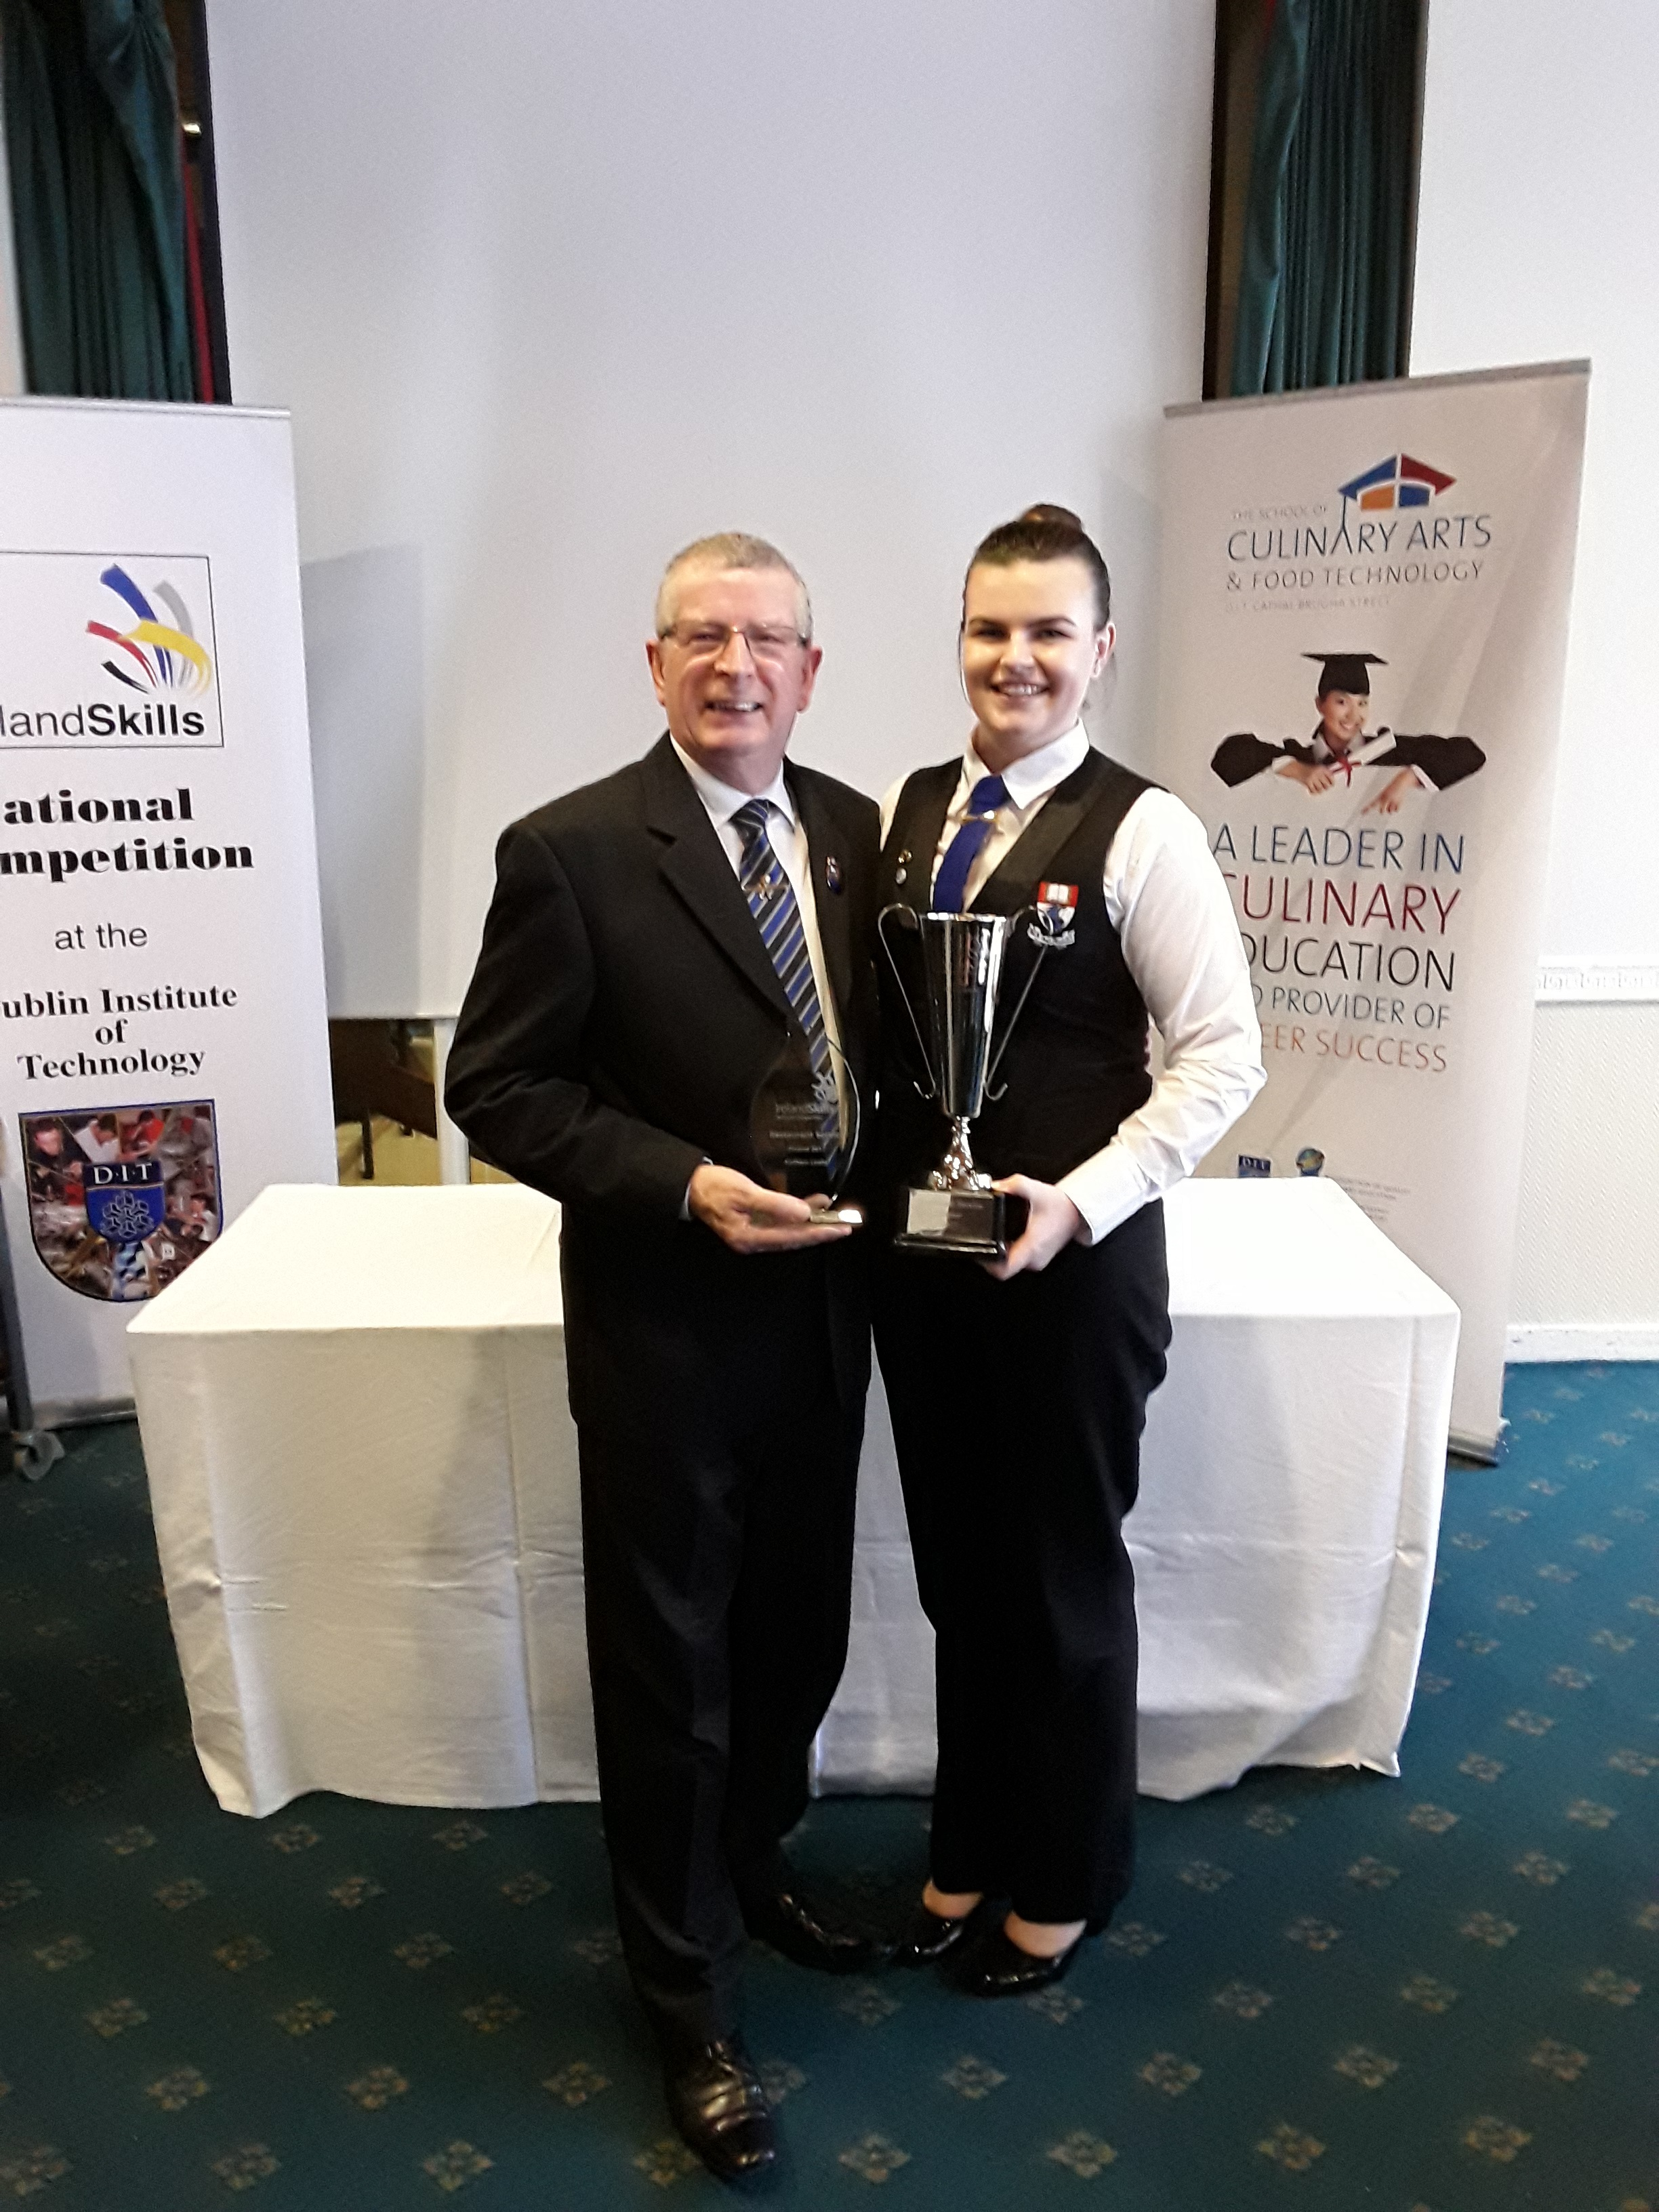 Pictured are Kathlyn and Head of Department, Ray Cullen